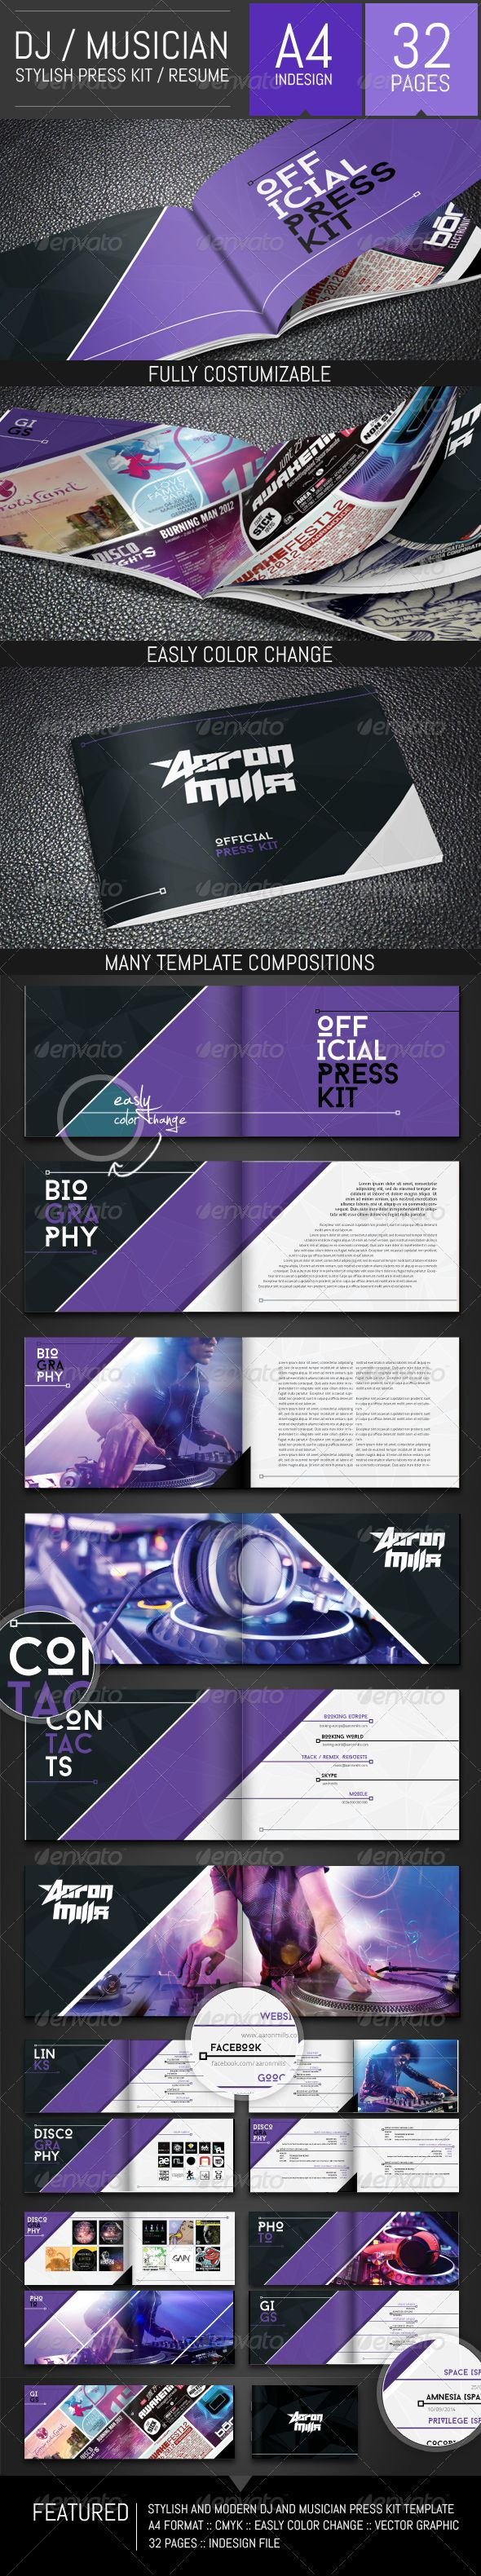 DJ and Musician Press Kit / Resume Template #graphicriver